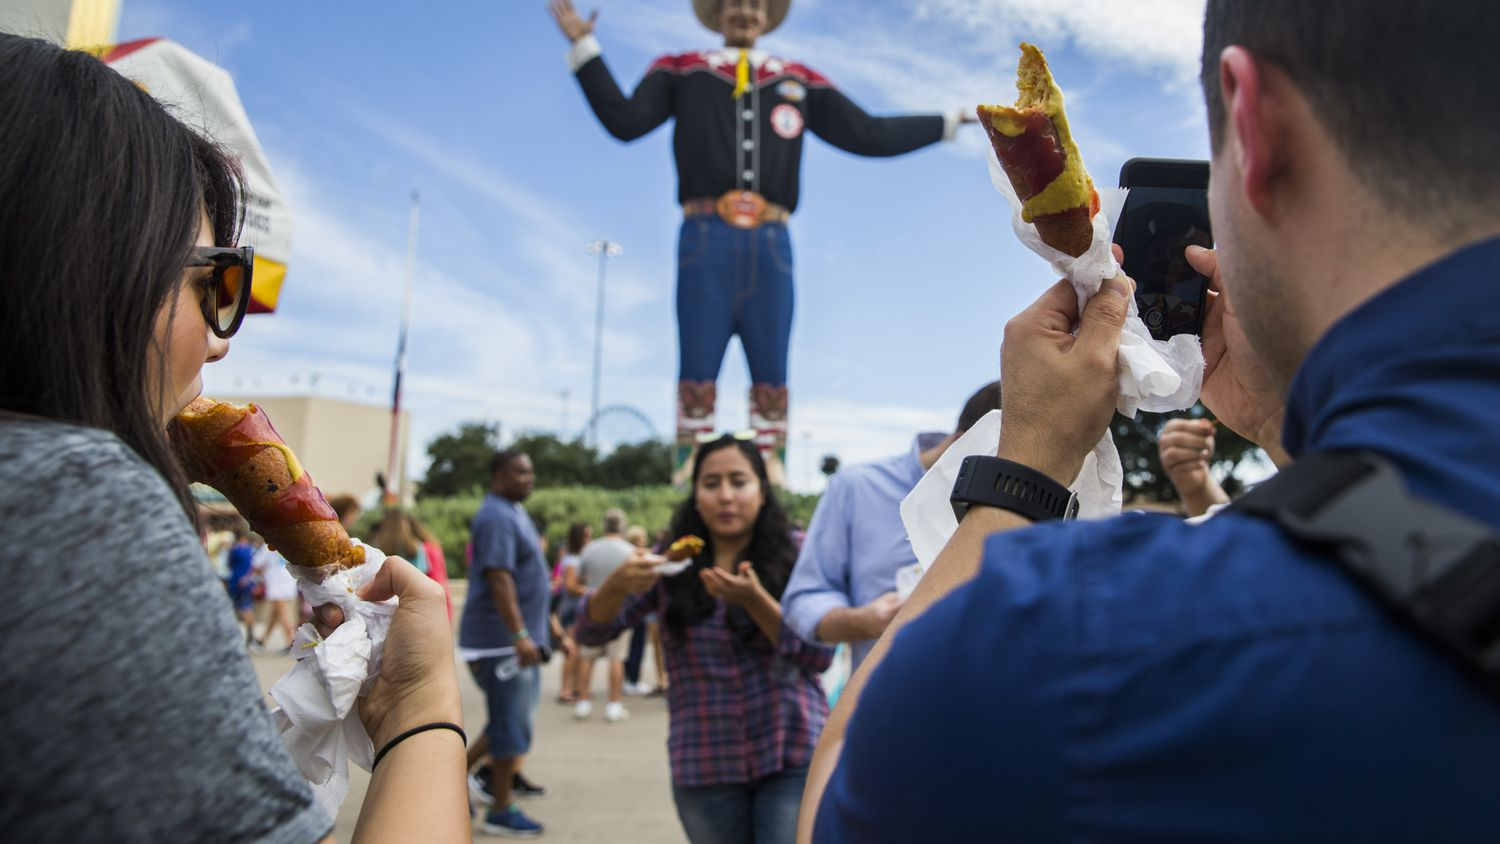 Fairgoers eat Fletcher's Corny Dogs while taking photos of Big Tex on Wednesday, October 4, 2017 at the State Fair of Texas in Dallas.